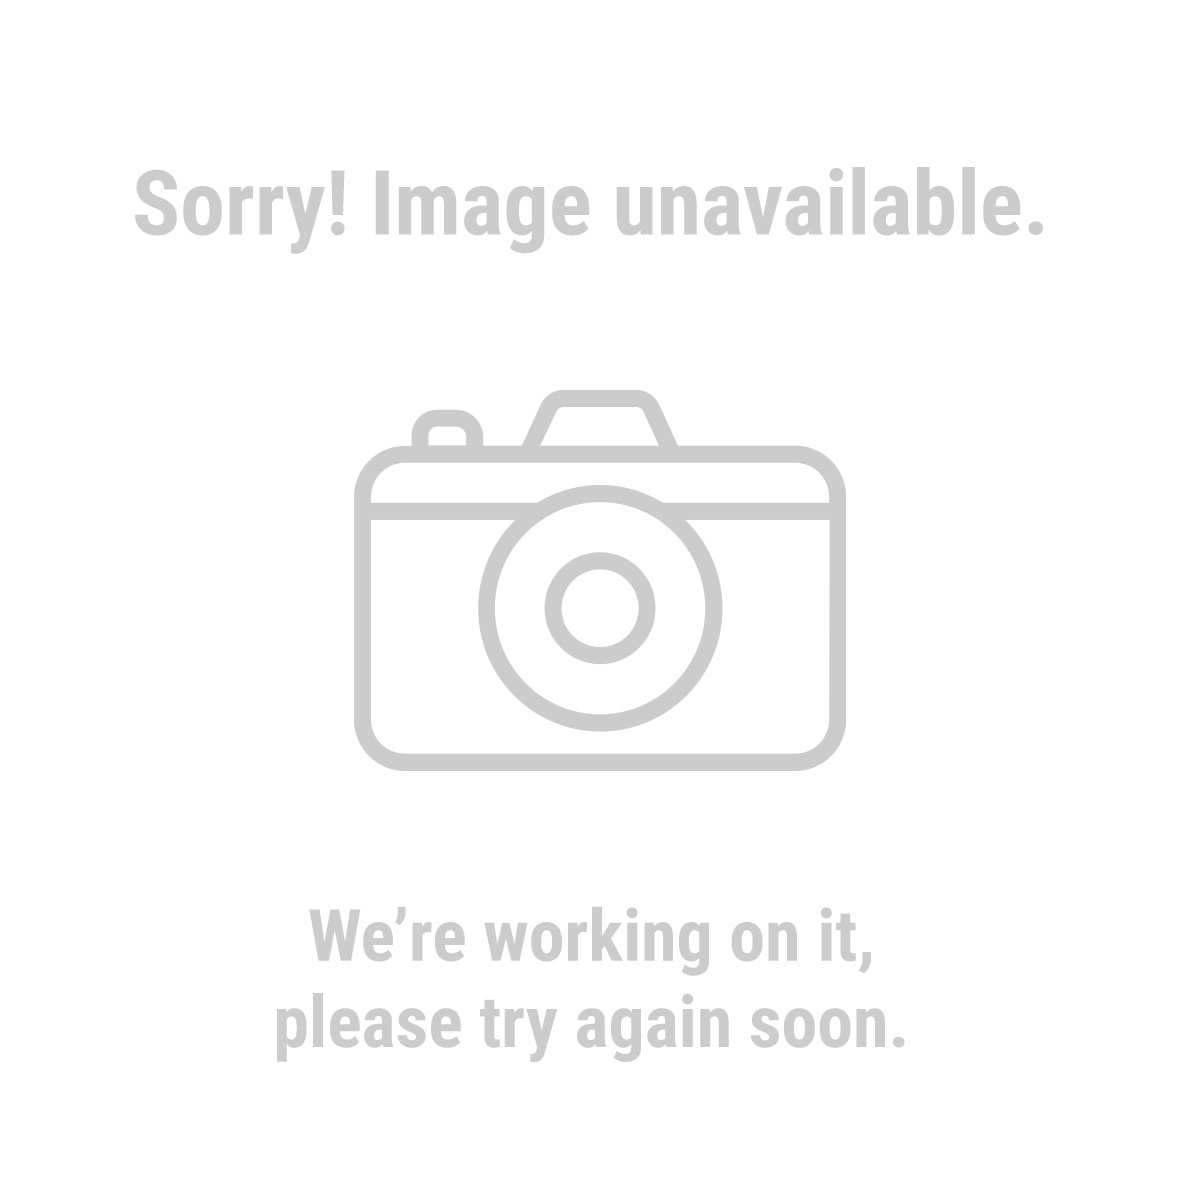 HFT 60728 10 Ft. x 20 Ft. All Purpose Canopy